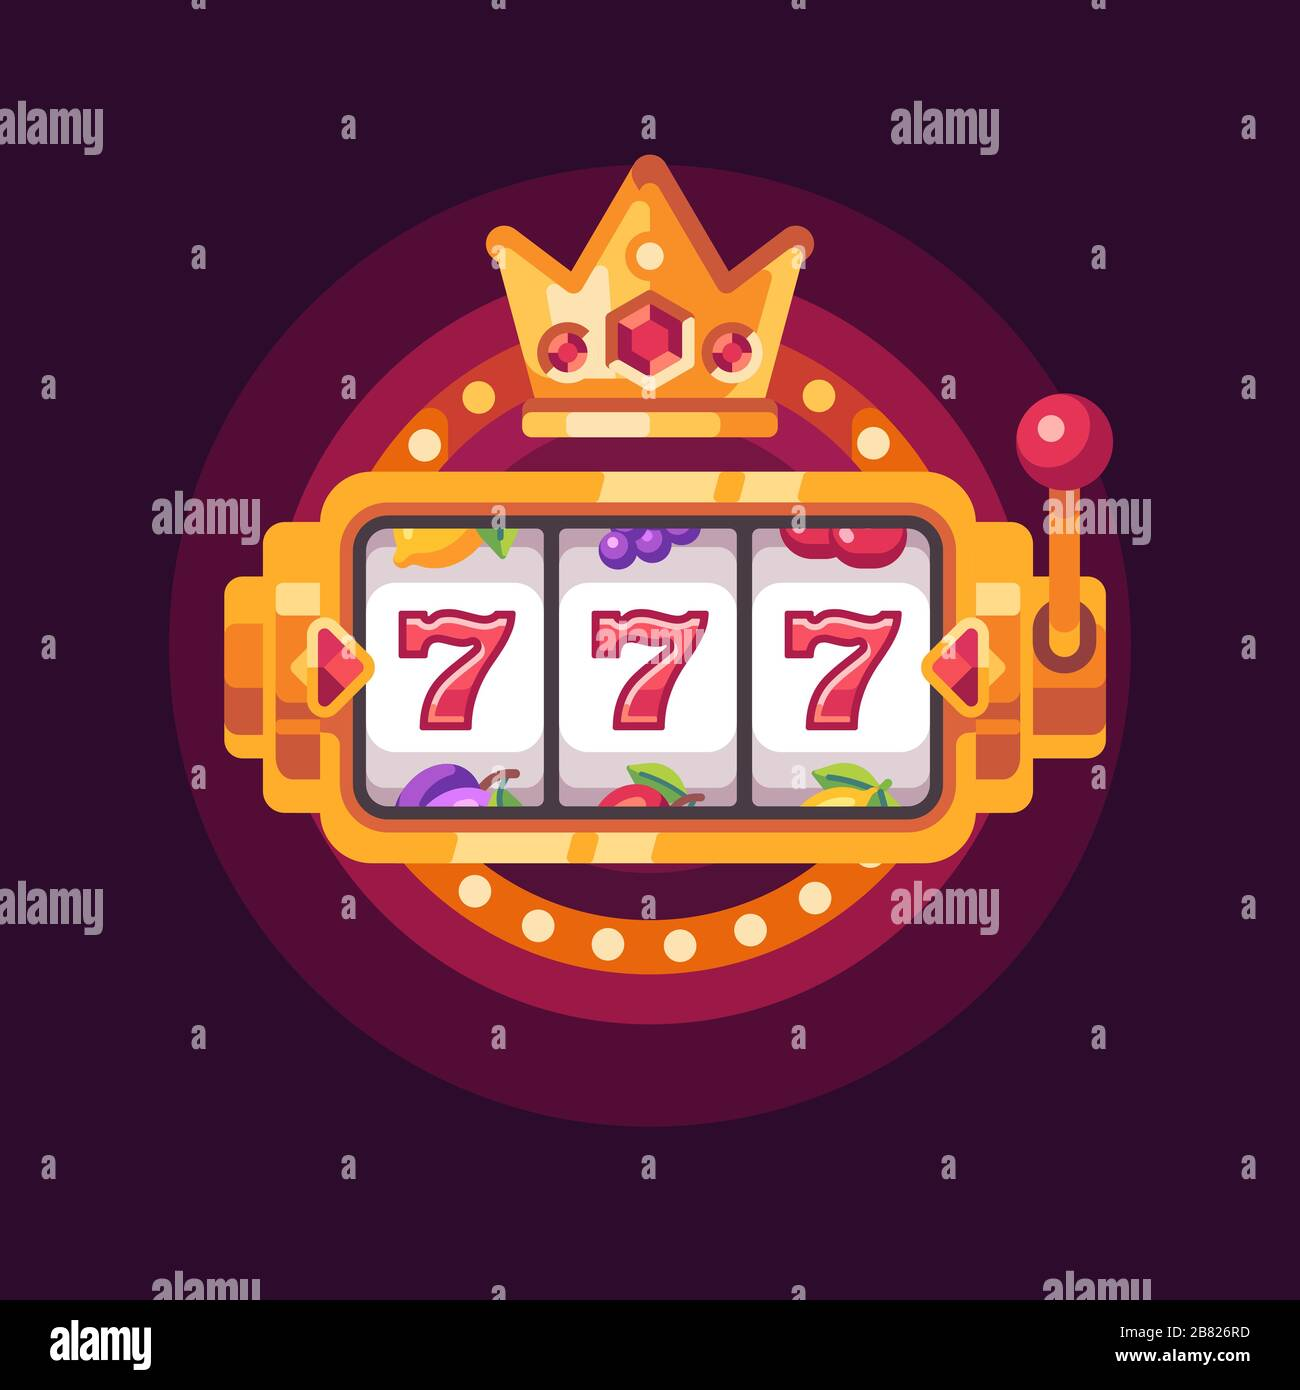 Slot Machine With A Golden Crown Casino 777 Win Flat Illustration Stock Vector Image Art Alamy